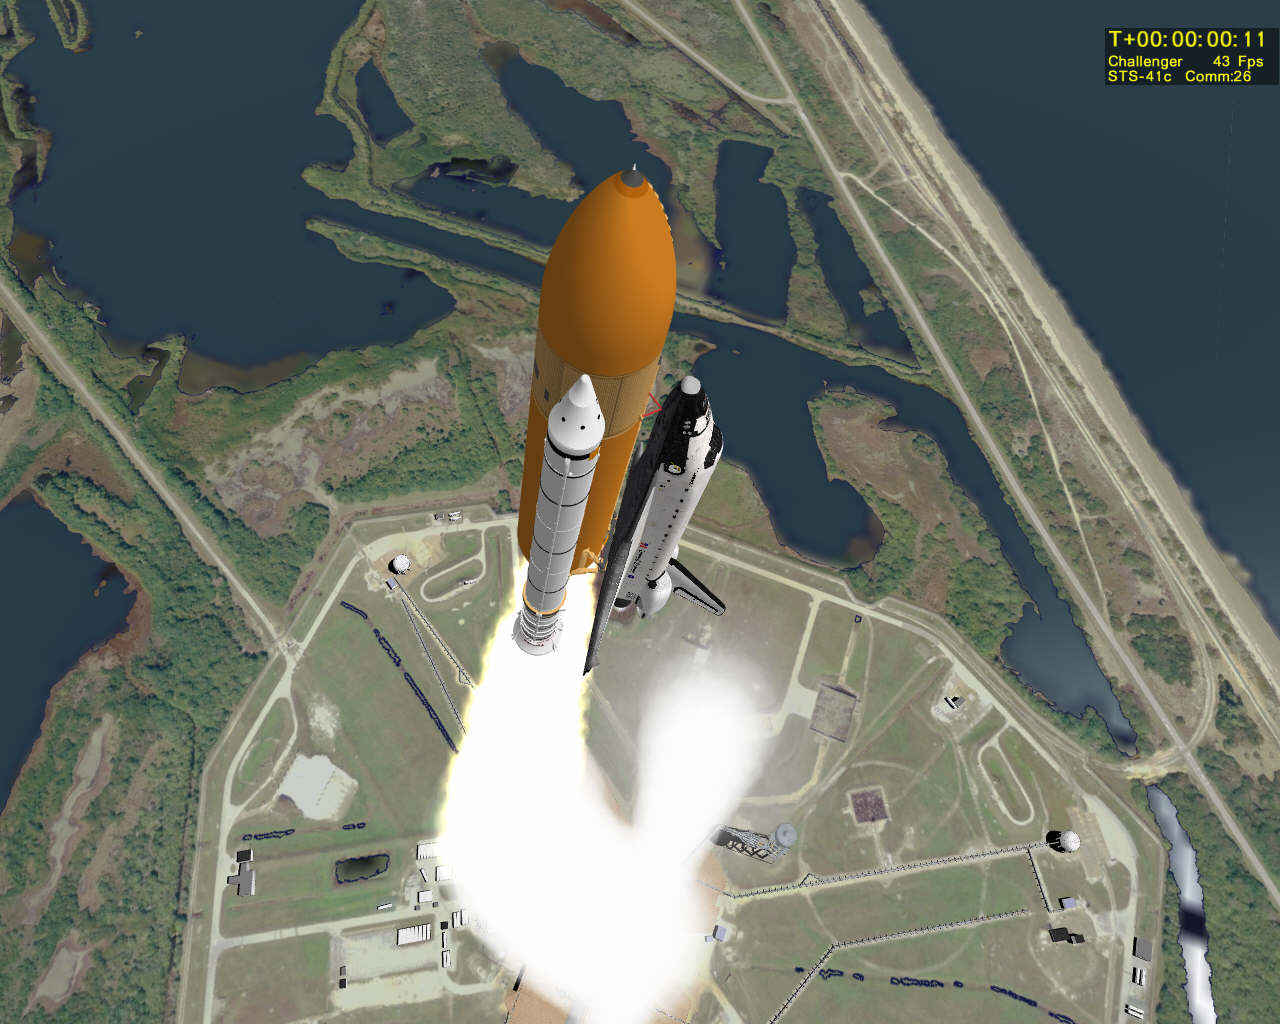 space shuttle simulator free online game - photo #15